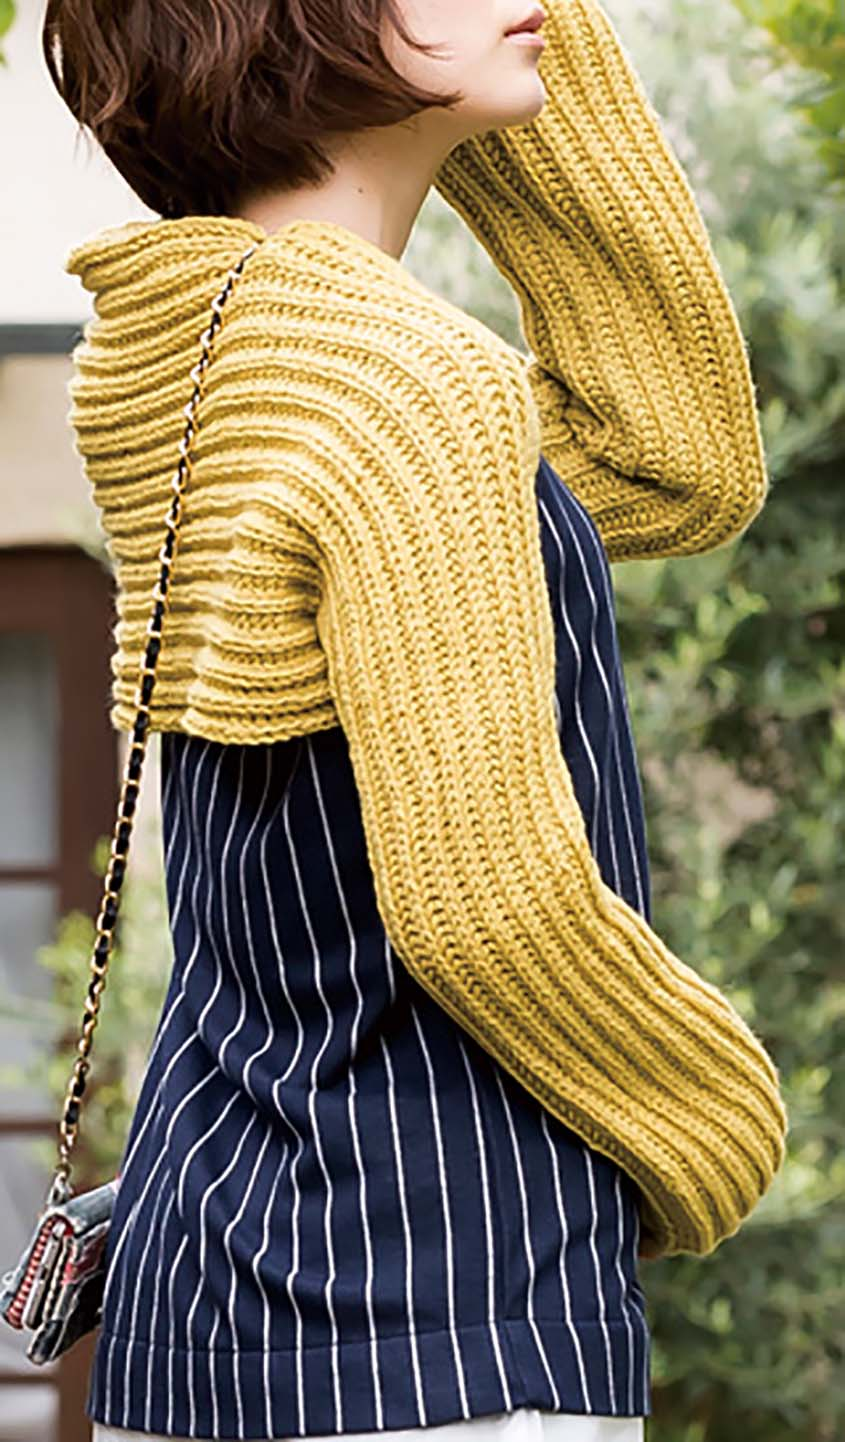 Scarf-shrug knitting pattern free